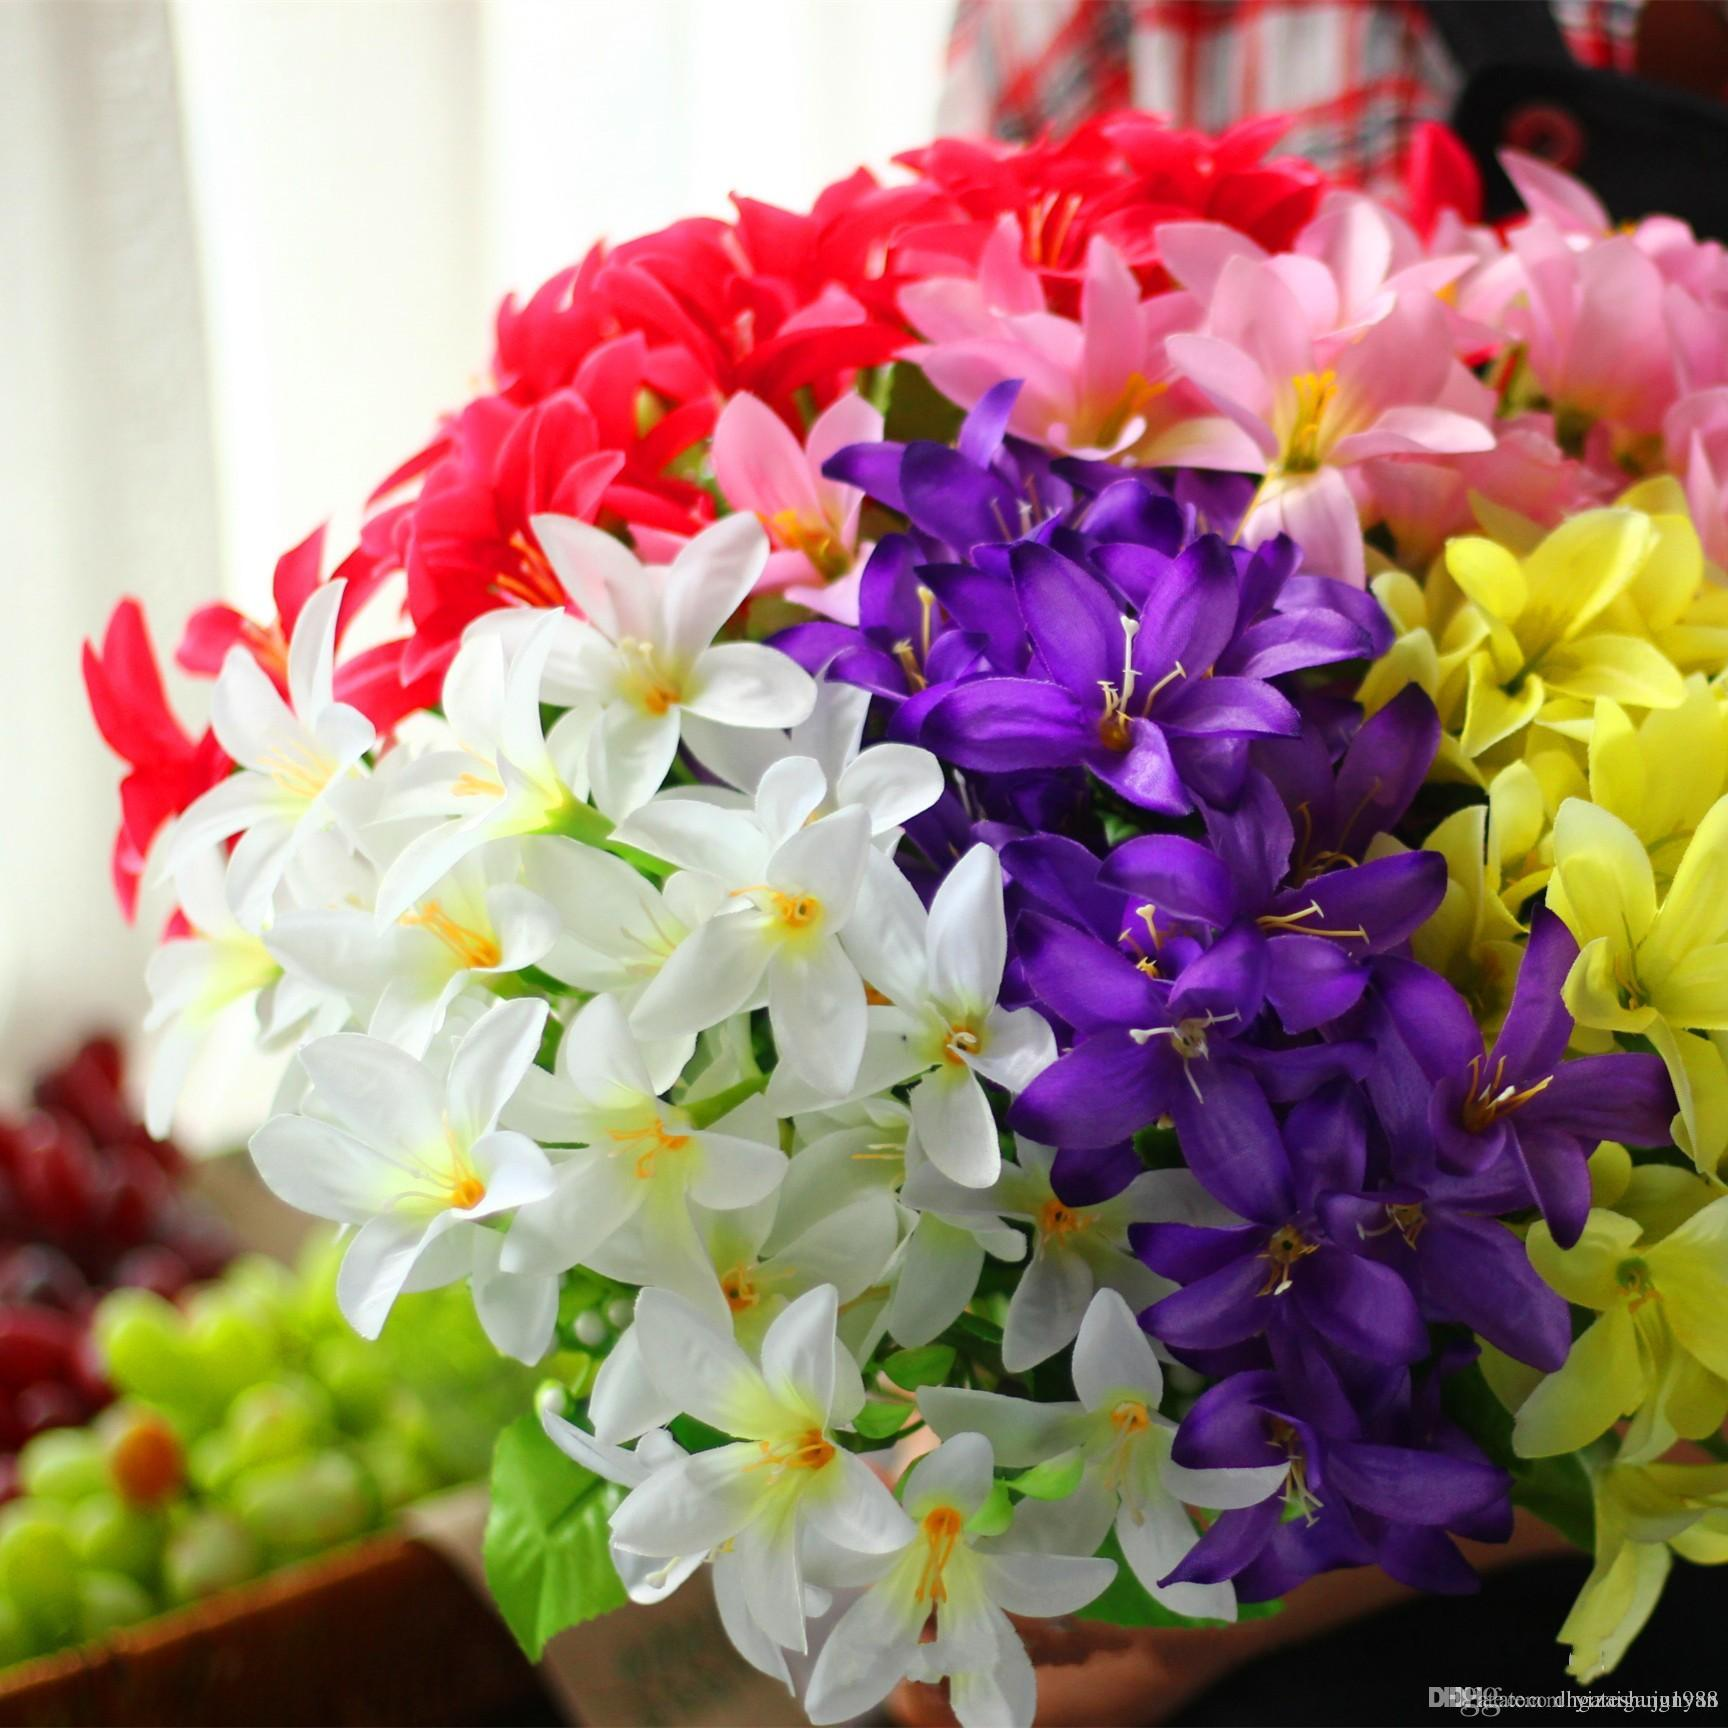 2019 Artificial Flower Fake Mini Lily 30 Heads Bouquet Craft Wedding on christmas poinsettia plant, christmas hydrangea plant, best christmas trees to plant, christmas care of lilies, christmas rose plant, christmas lion, christmas plant ideas, christmas jade plant, christmas fern plant, christmas holly plant, christmas hope plant, christmas mistletoe plant, christmas kalanchoe plant, christmas orchid plant, christmas holiday plants, christmas cactus plant, christmas tree looking plant, christmas chinese lantern plant, christmas flowers,